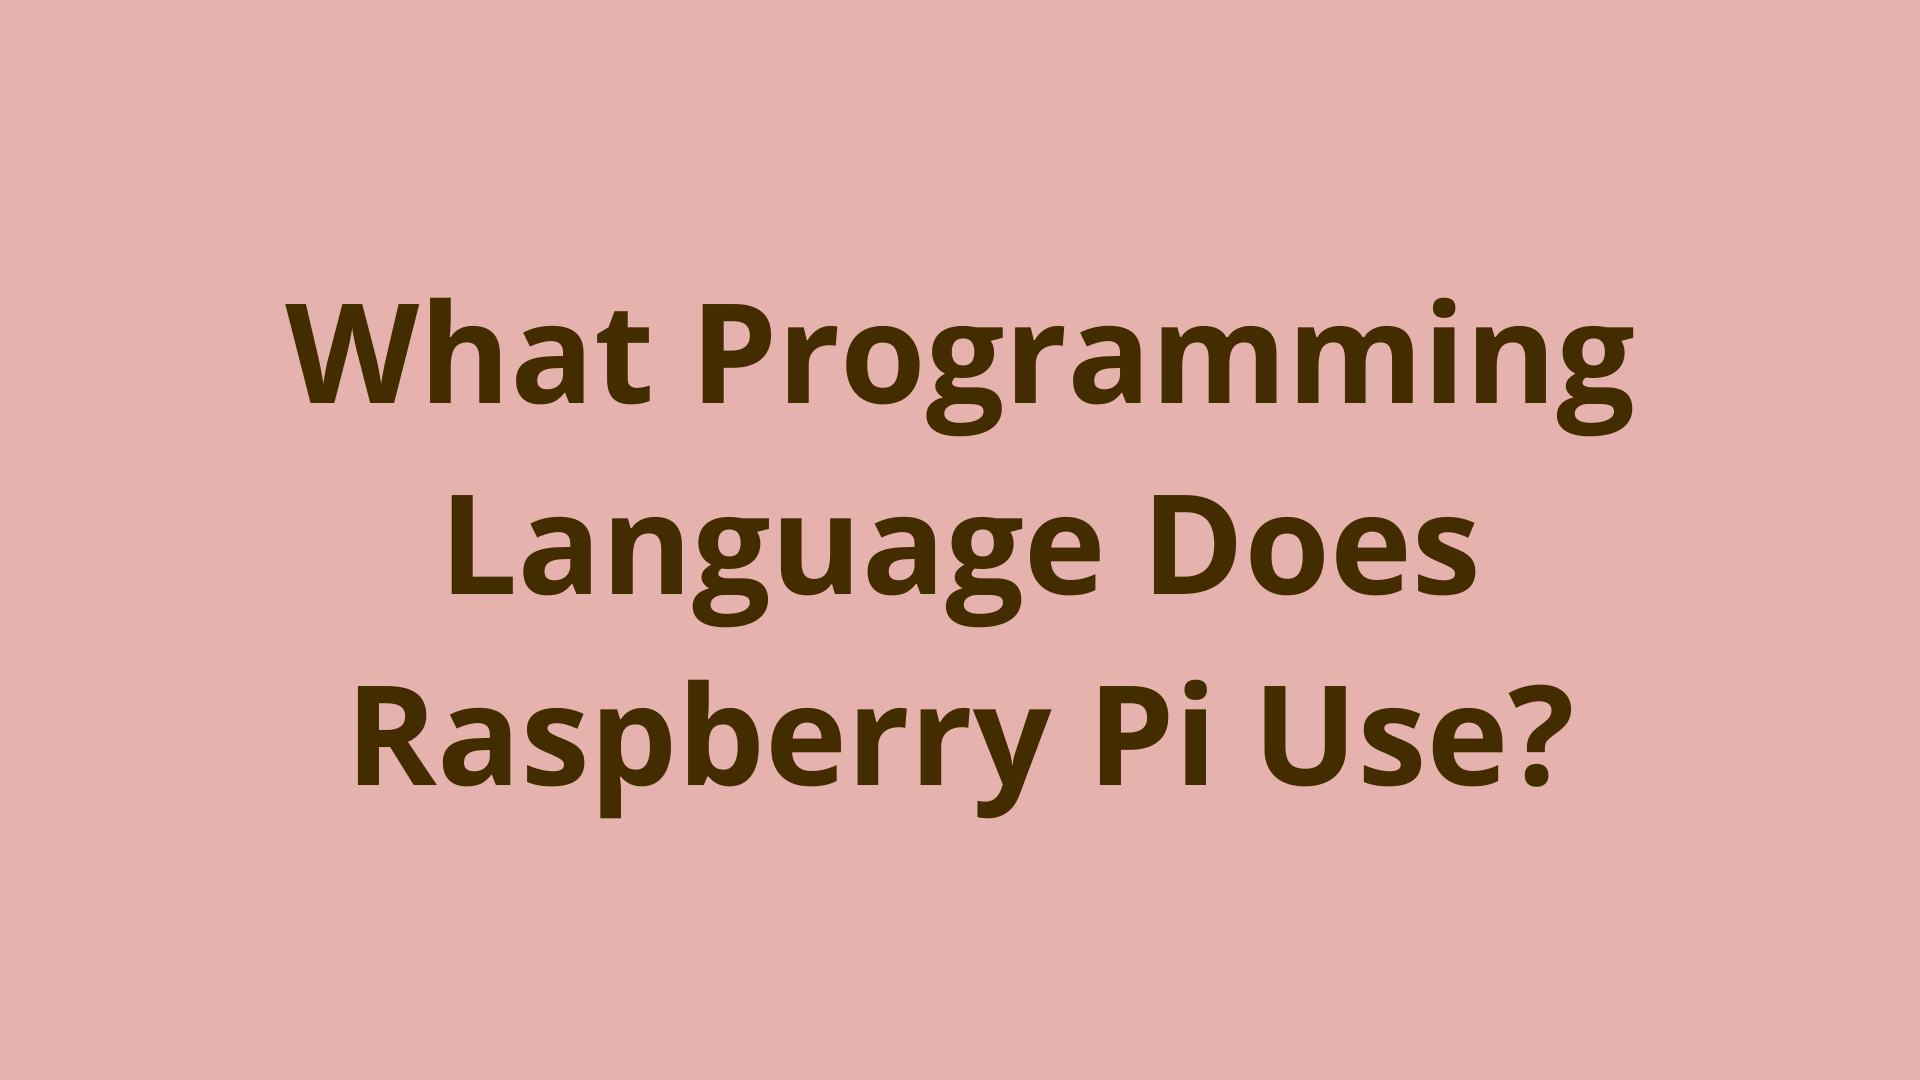 Image of What Programming Language Does Raspberry Pi Use?